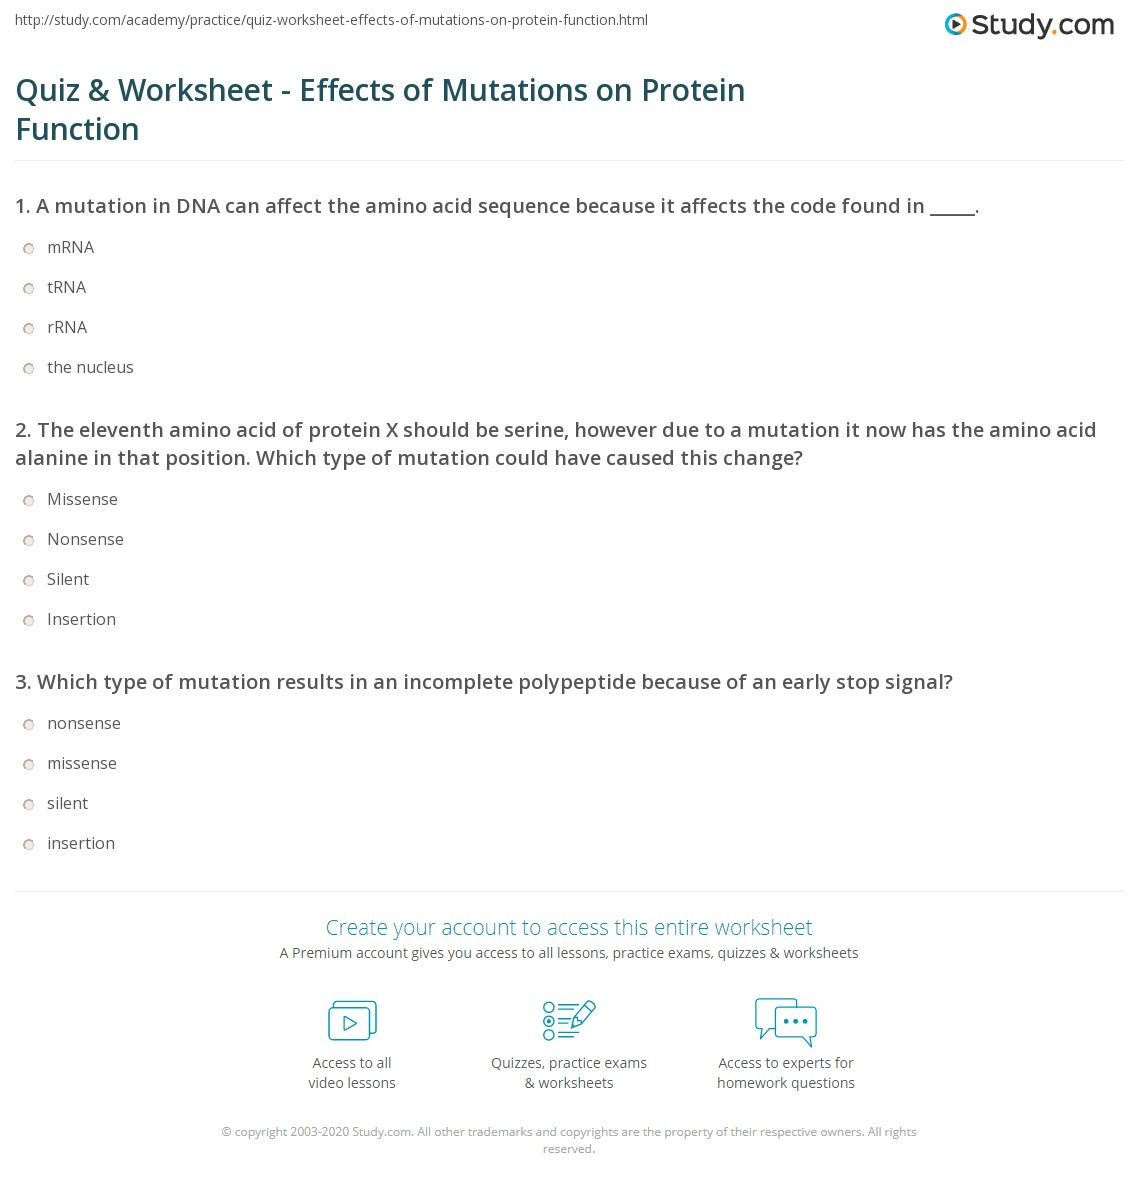 Quiz & Worksheet - Effects of Mutations on Protein Function ...